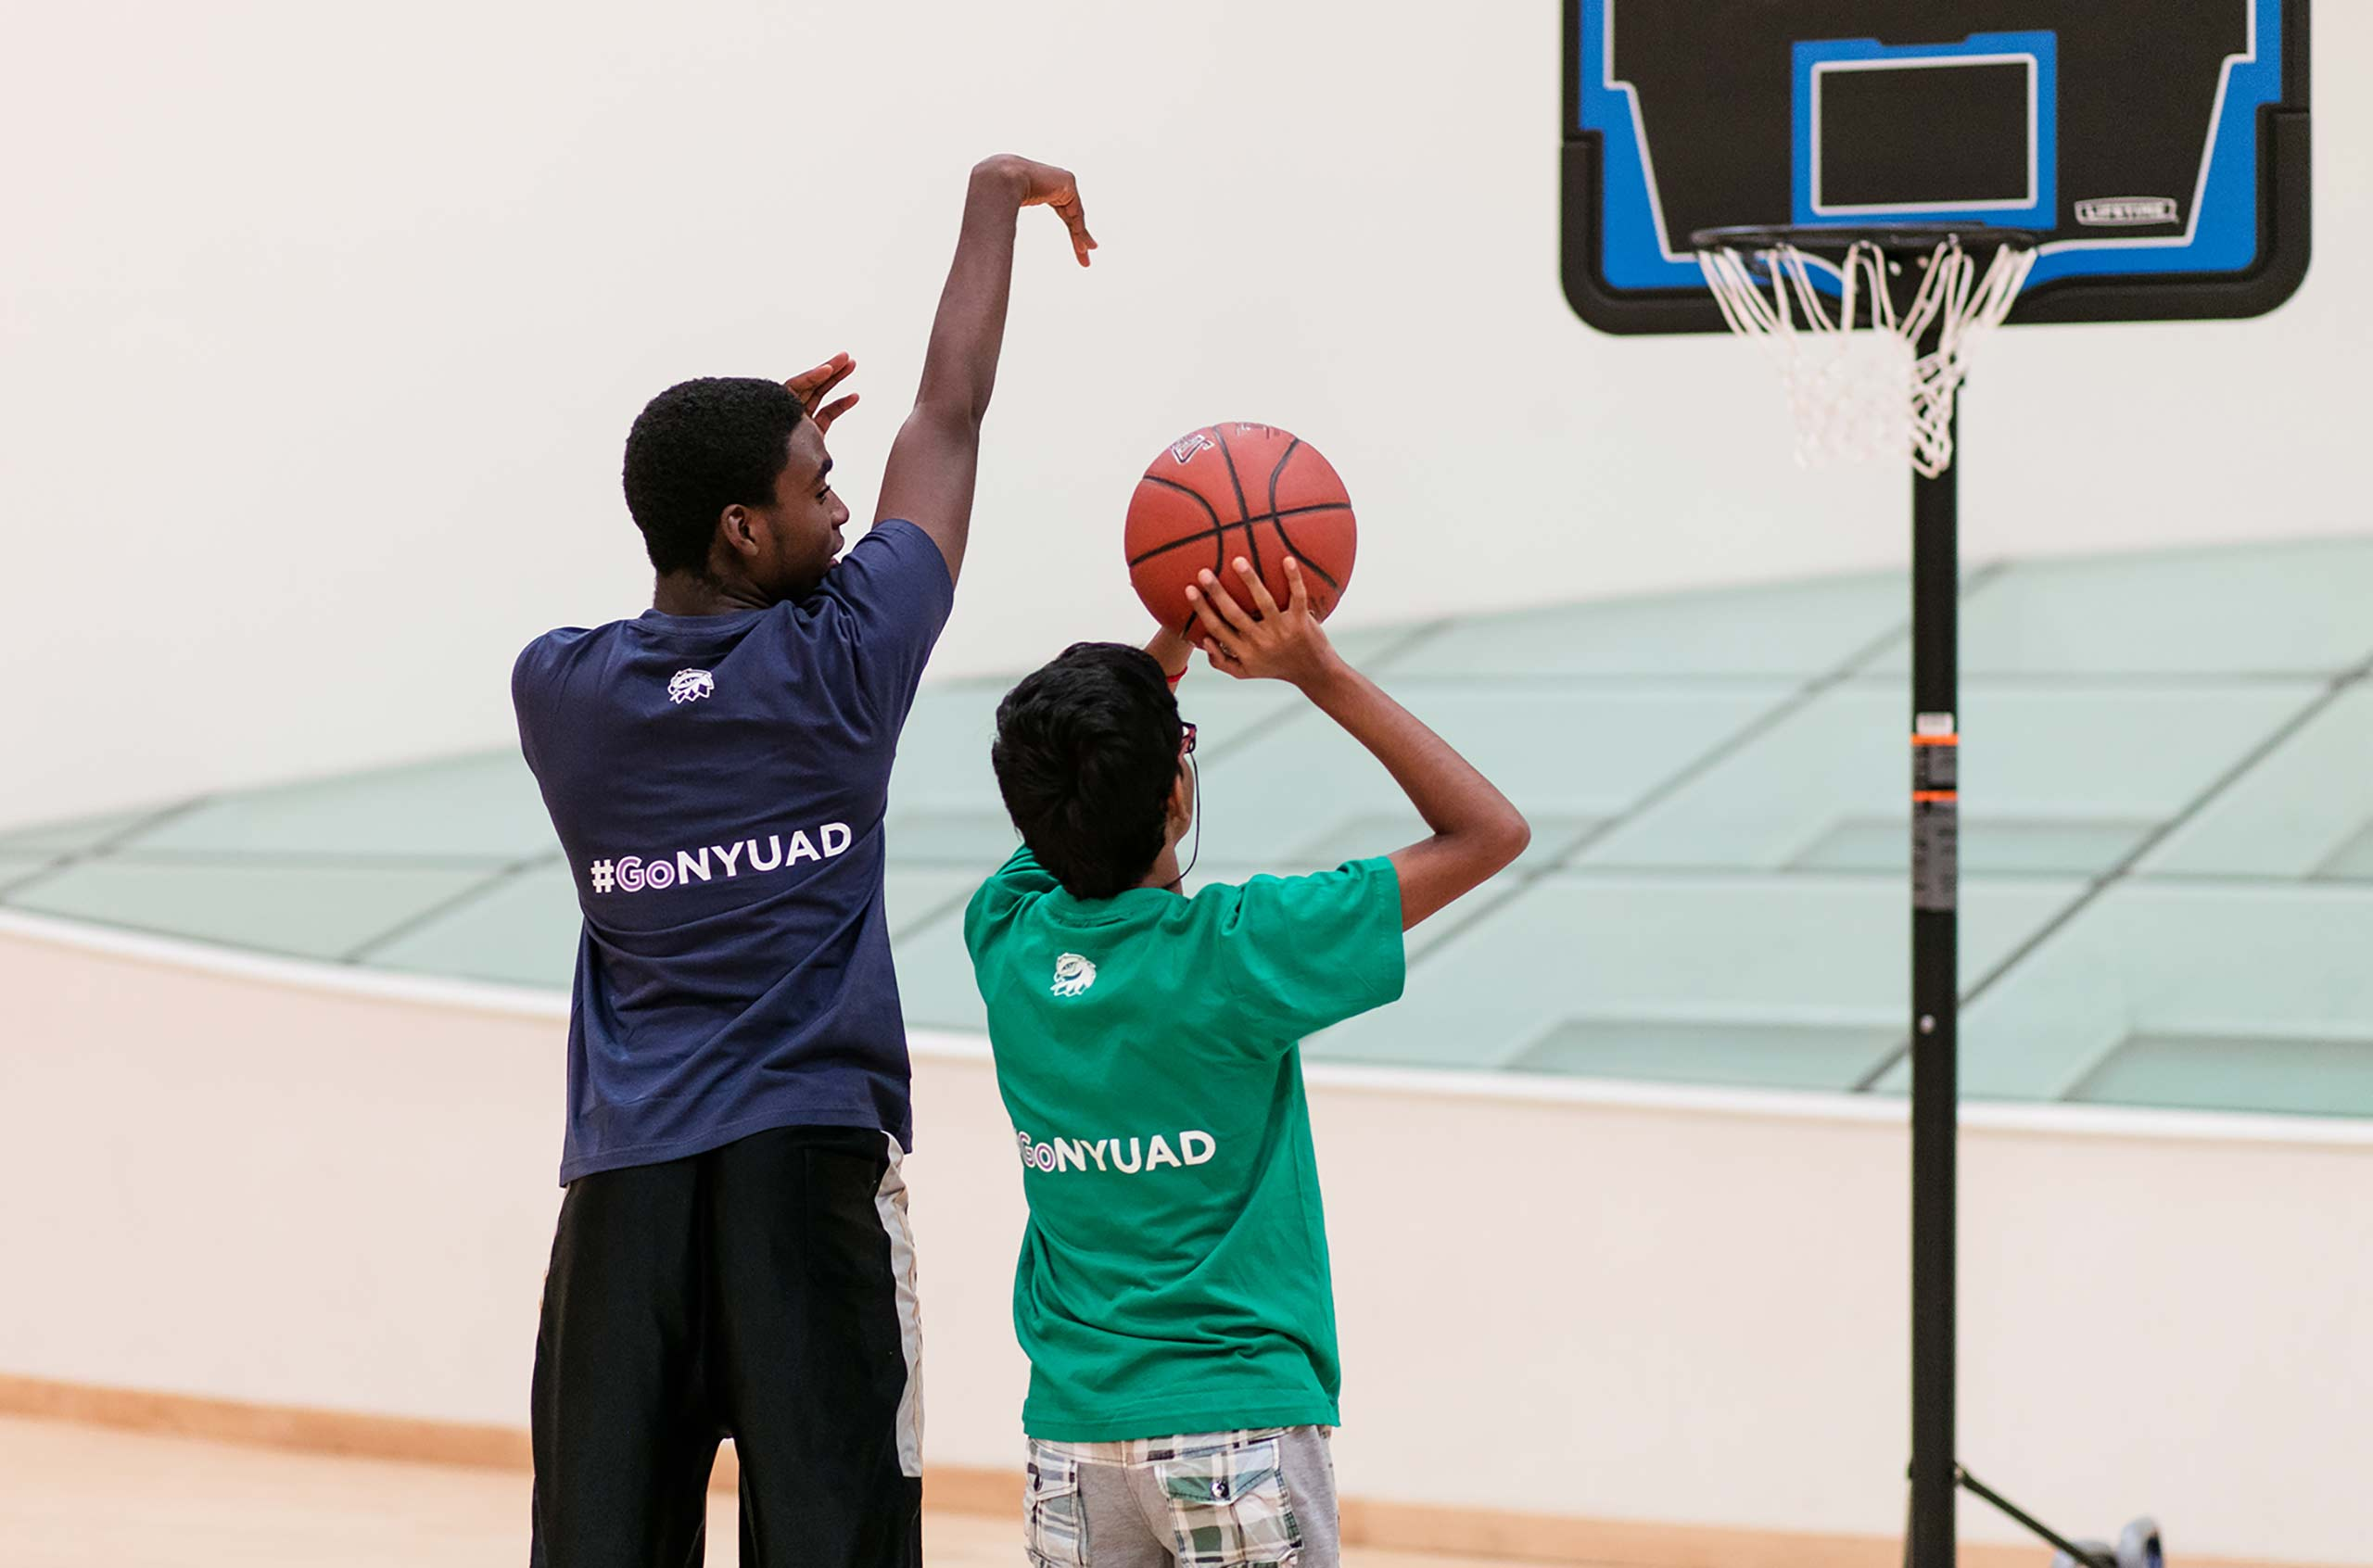 NYU Abu Dhabi student demonstrating to a child how to properly shoot a basketball